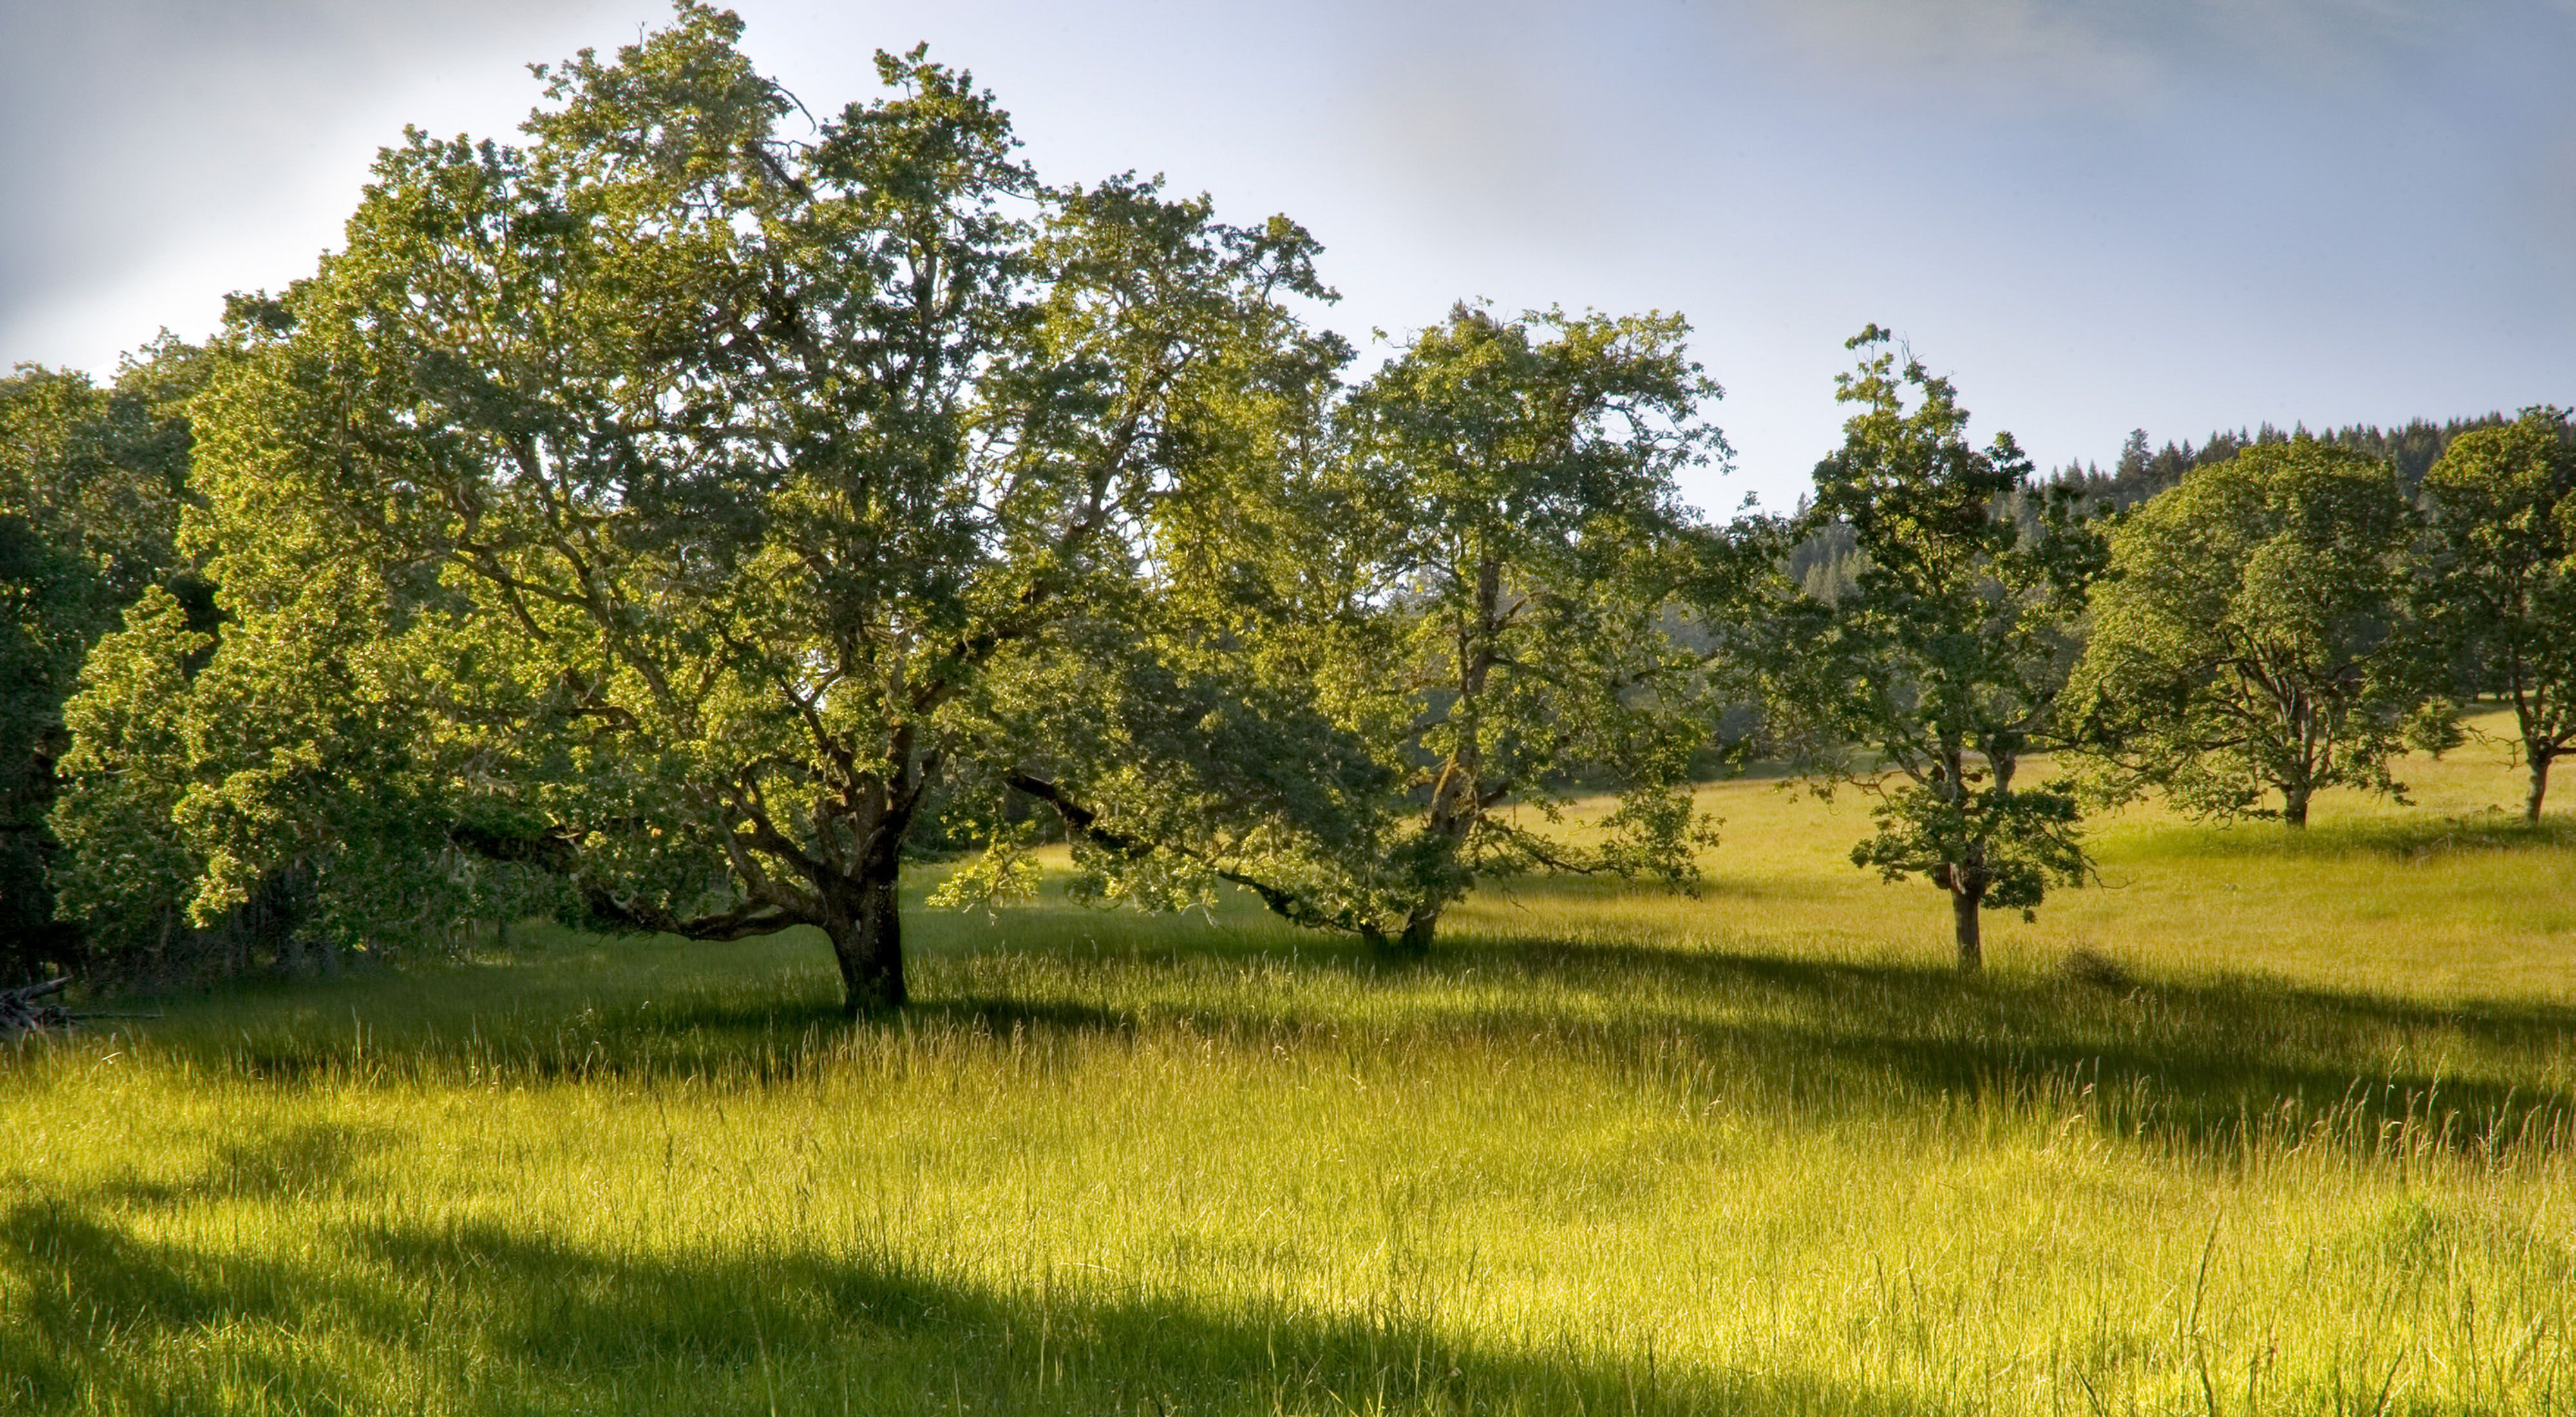 Coburg Ridge Preserve, in the heart of the Willamette Valley's oak and prairie habitats.